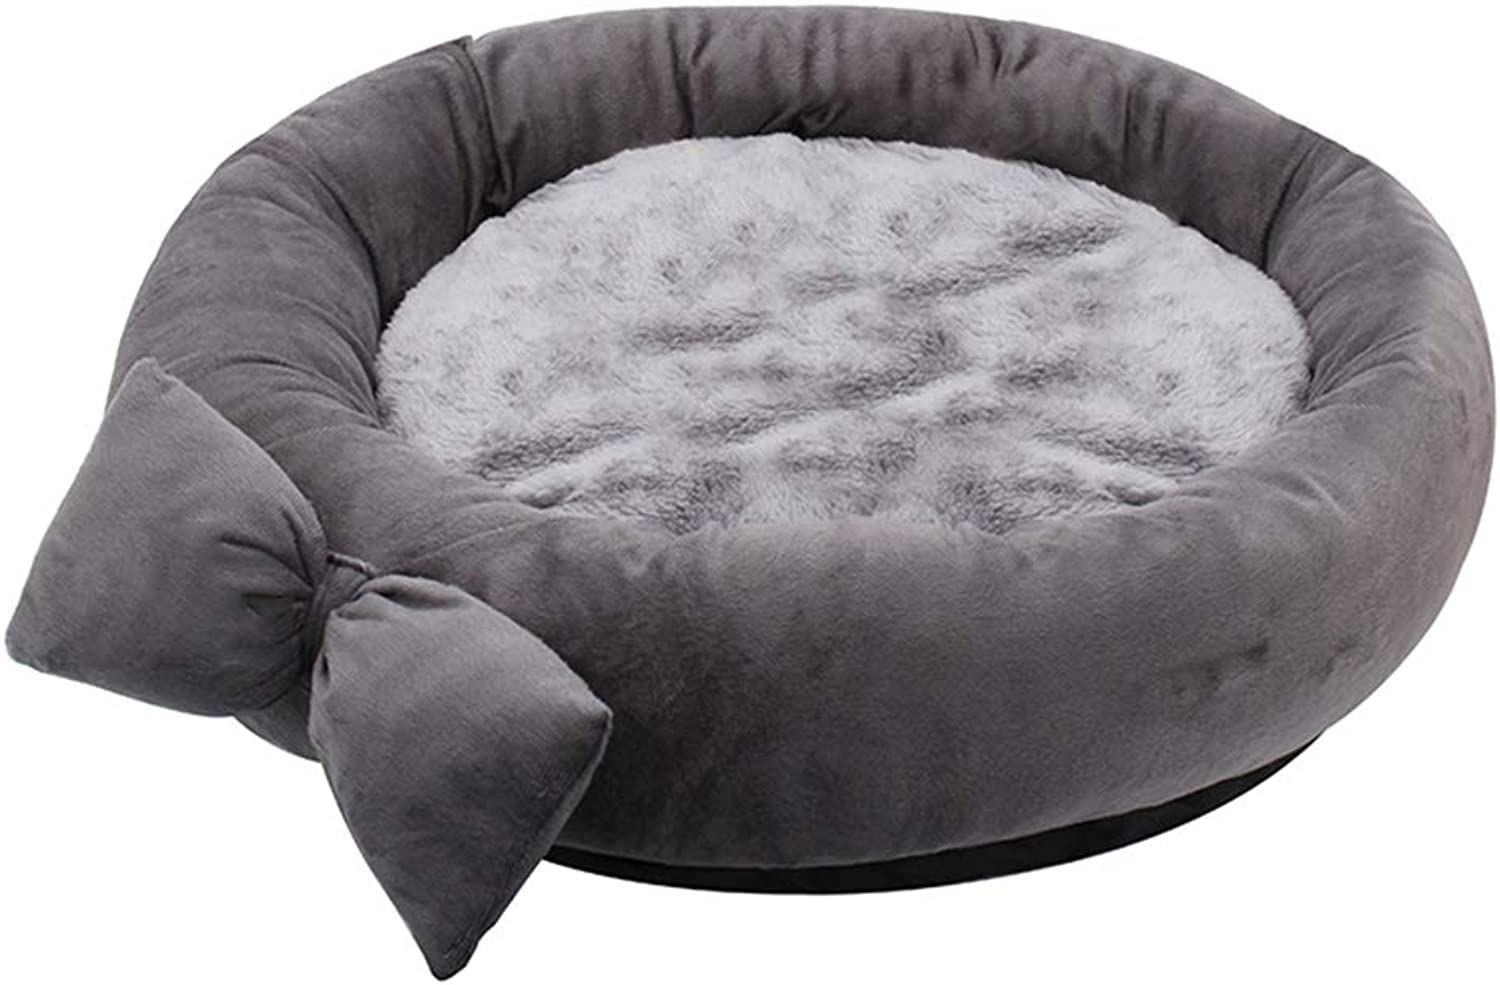 Dog Bed Round with Bow Small Dog Medium Dog Teddy Cat Litter Pet Supplies Autumn and Winter Seasons Removable and Washable (Size   Medium)